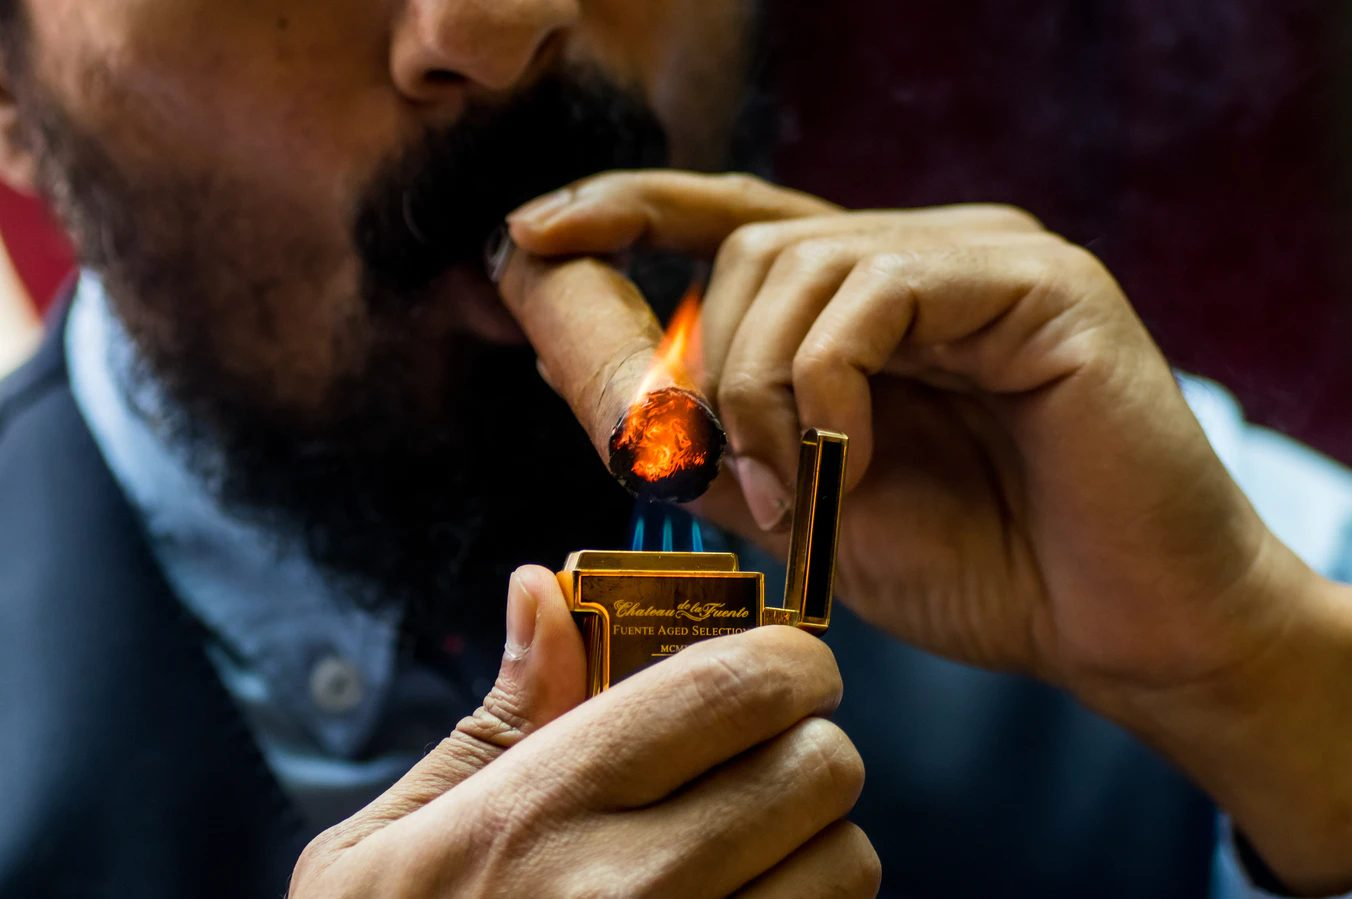 Man in a suit lighting a blunt